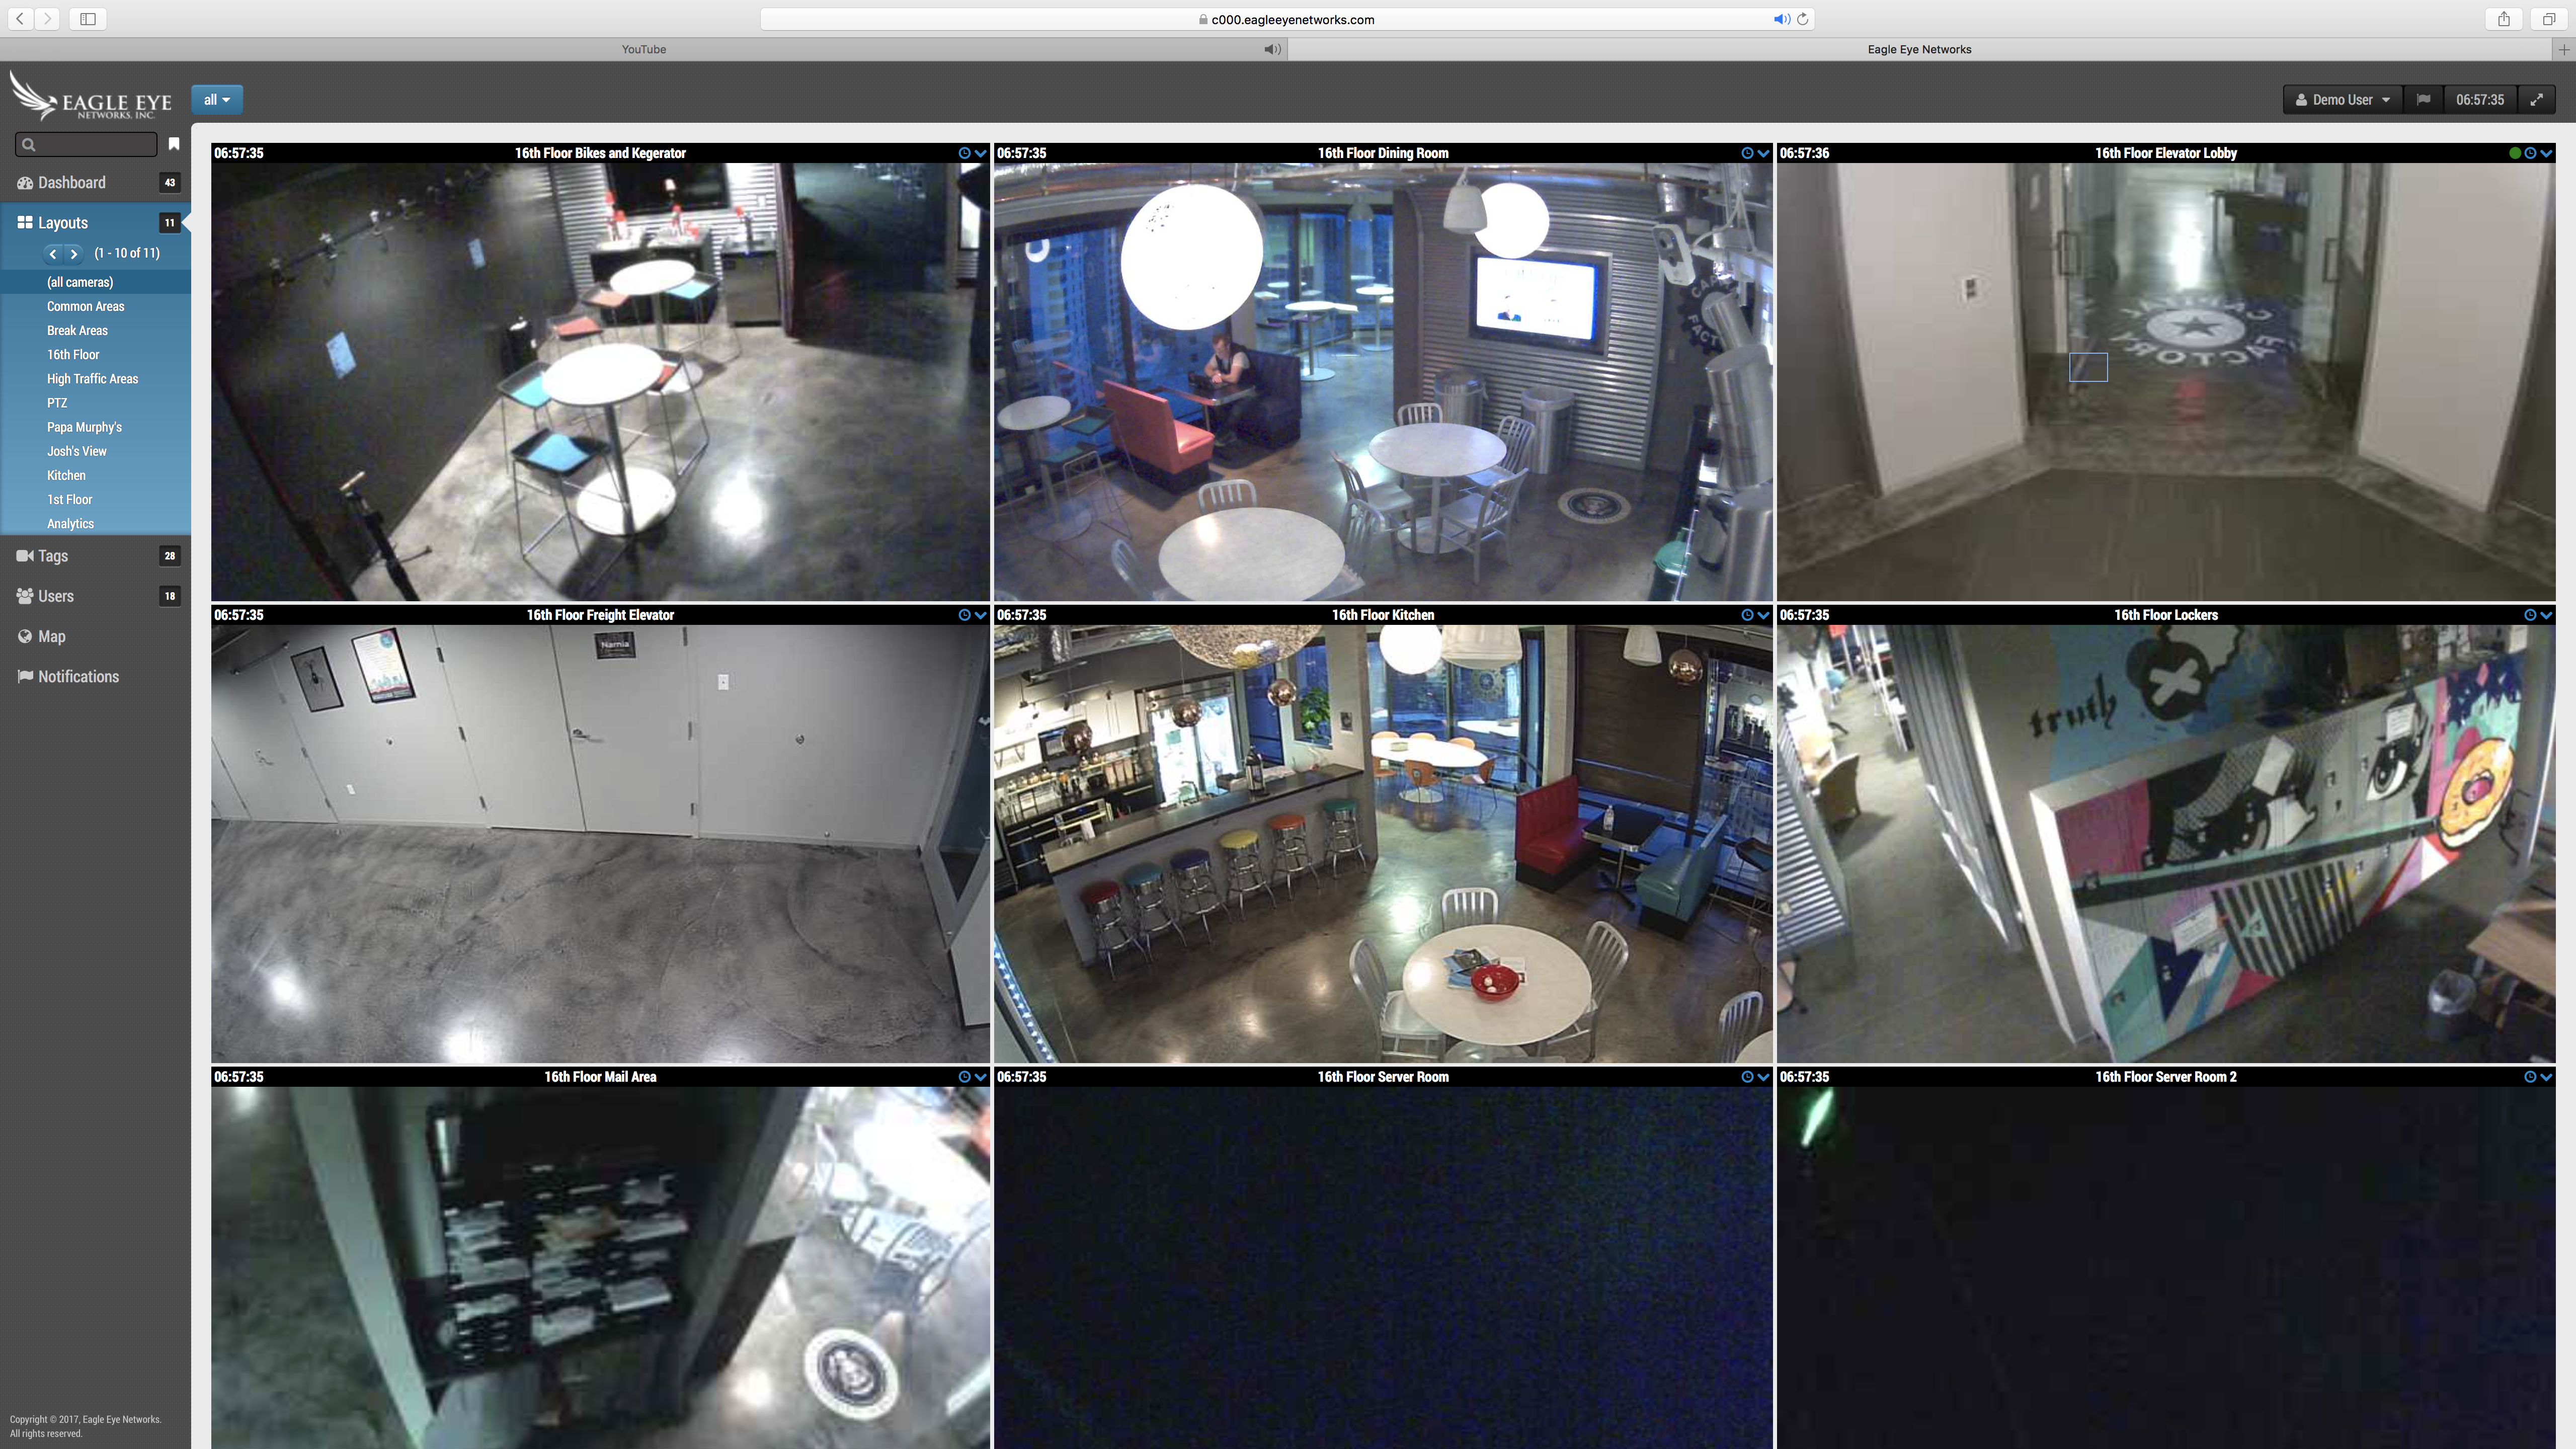 Screen Shot Eagle Eye Networks video surveillance CCTV security camera Austin